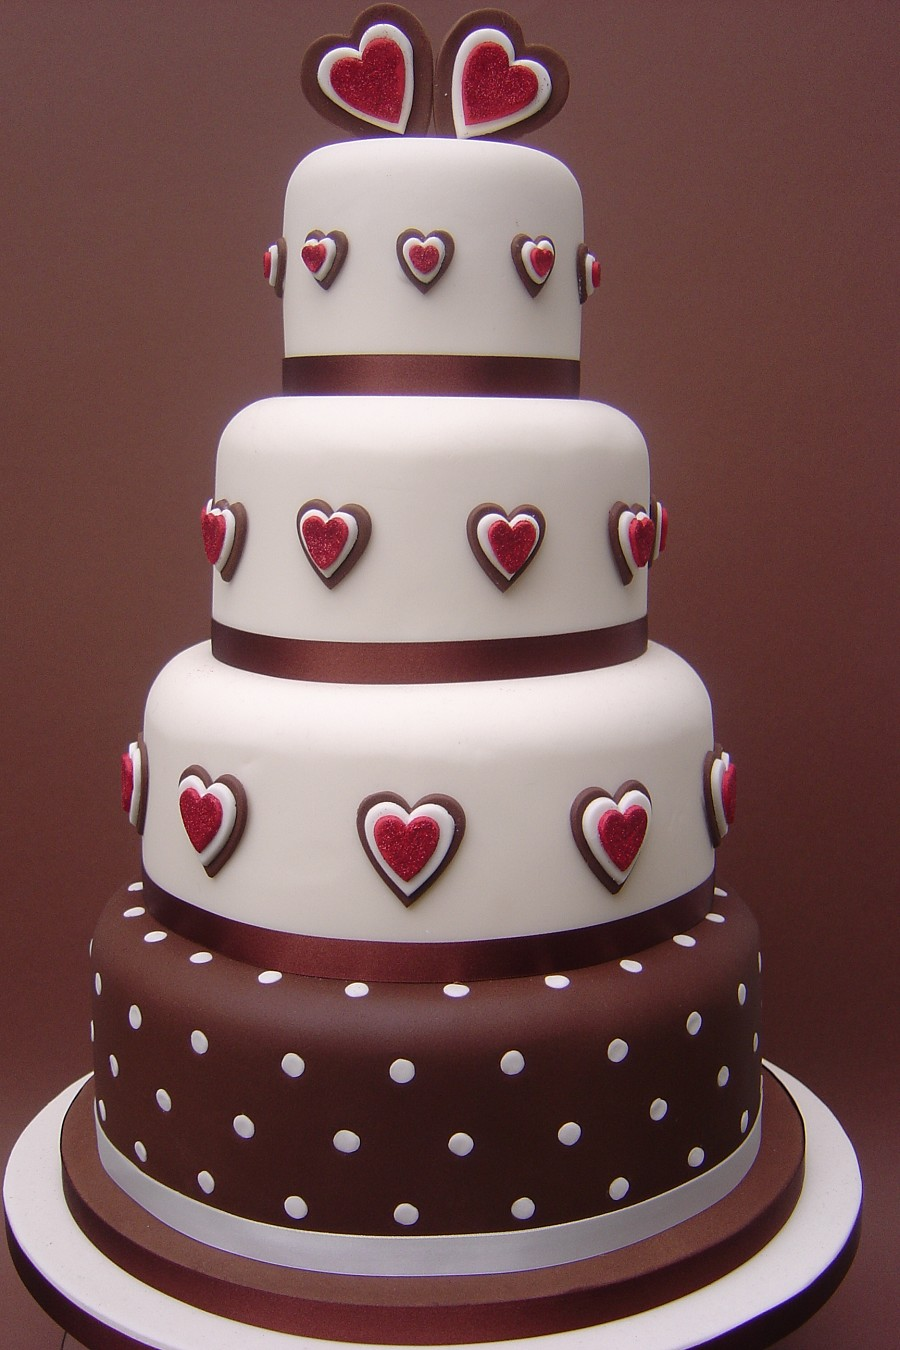 Cake Design Bakery : 50th Wedding Anniversary Cake Ideas